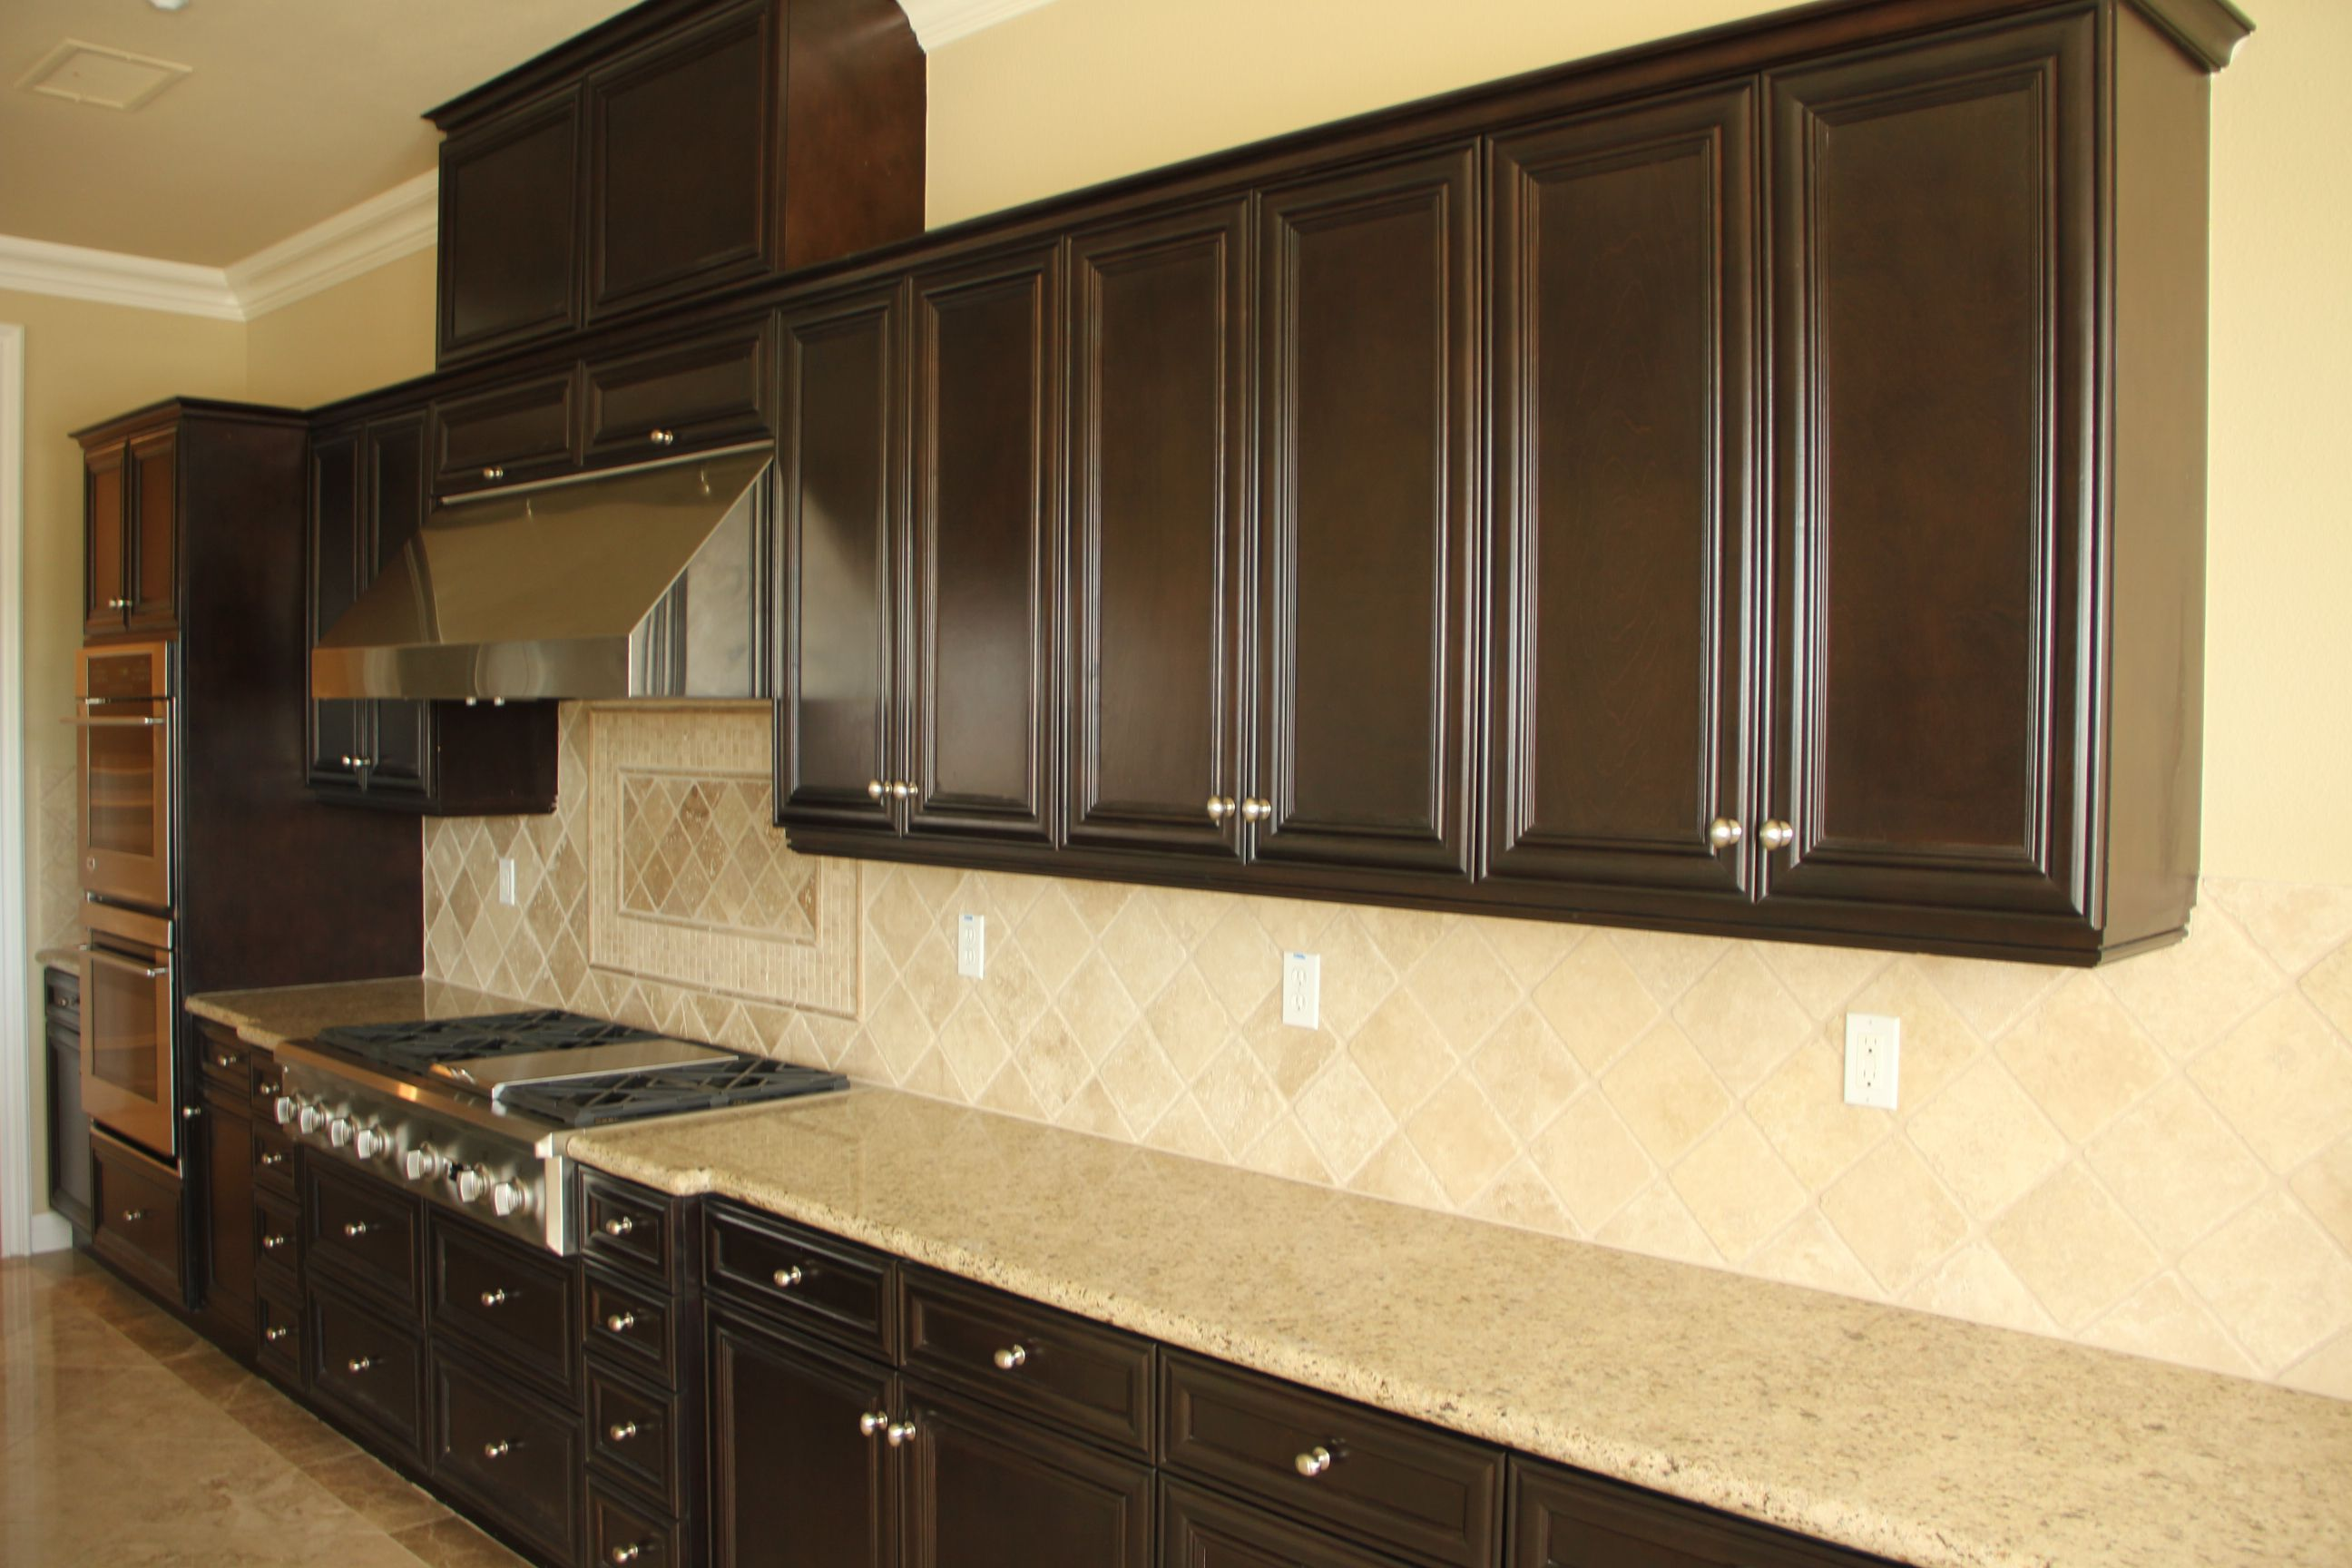 Delicate Interior Room With Sleek Cabinet also Kitchen Wall Tile